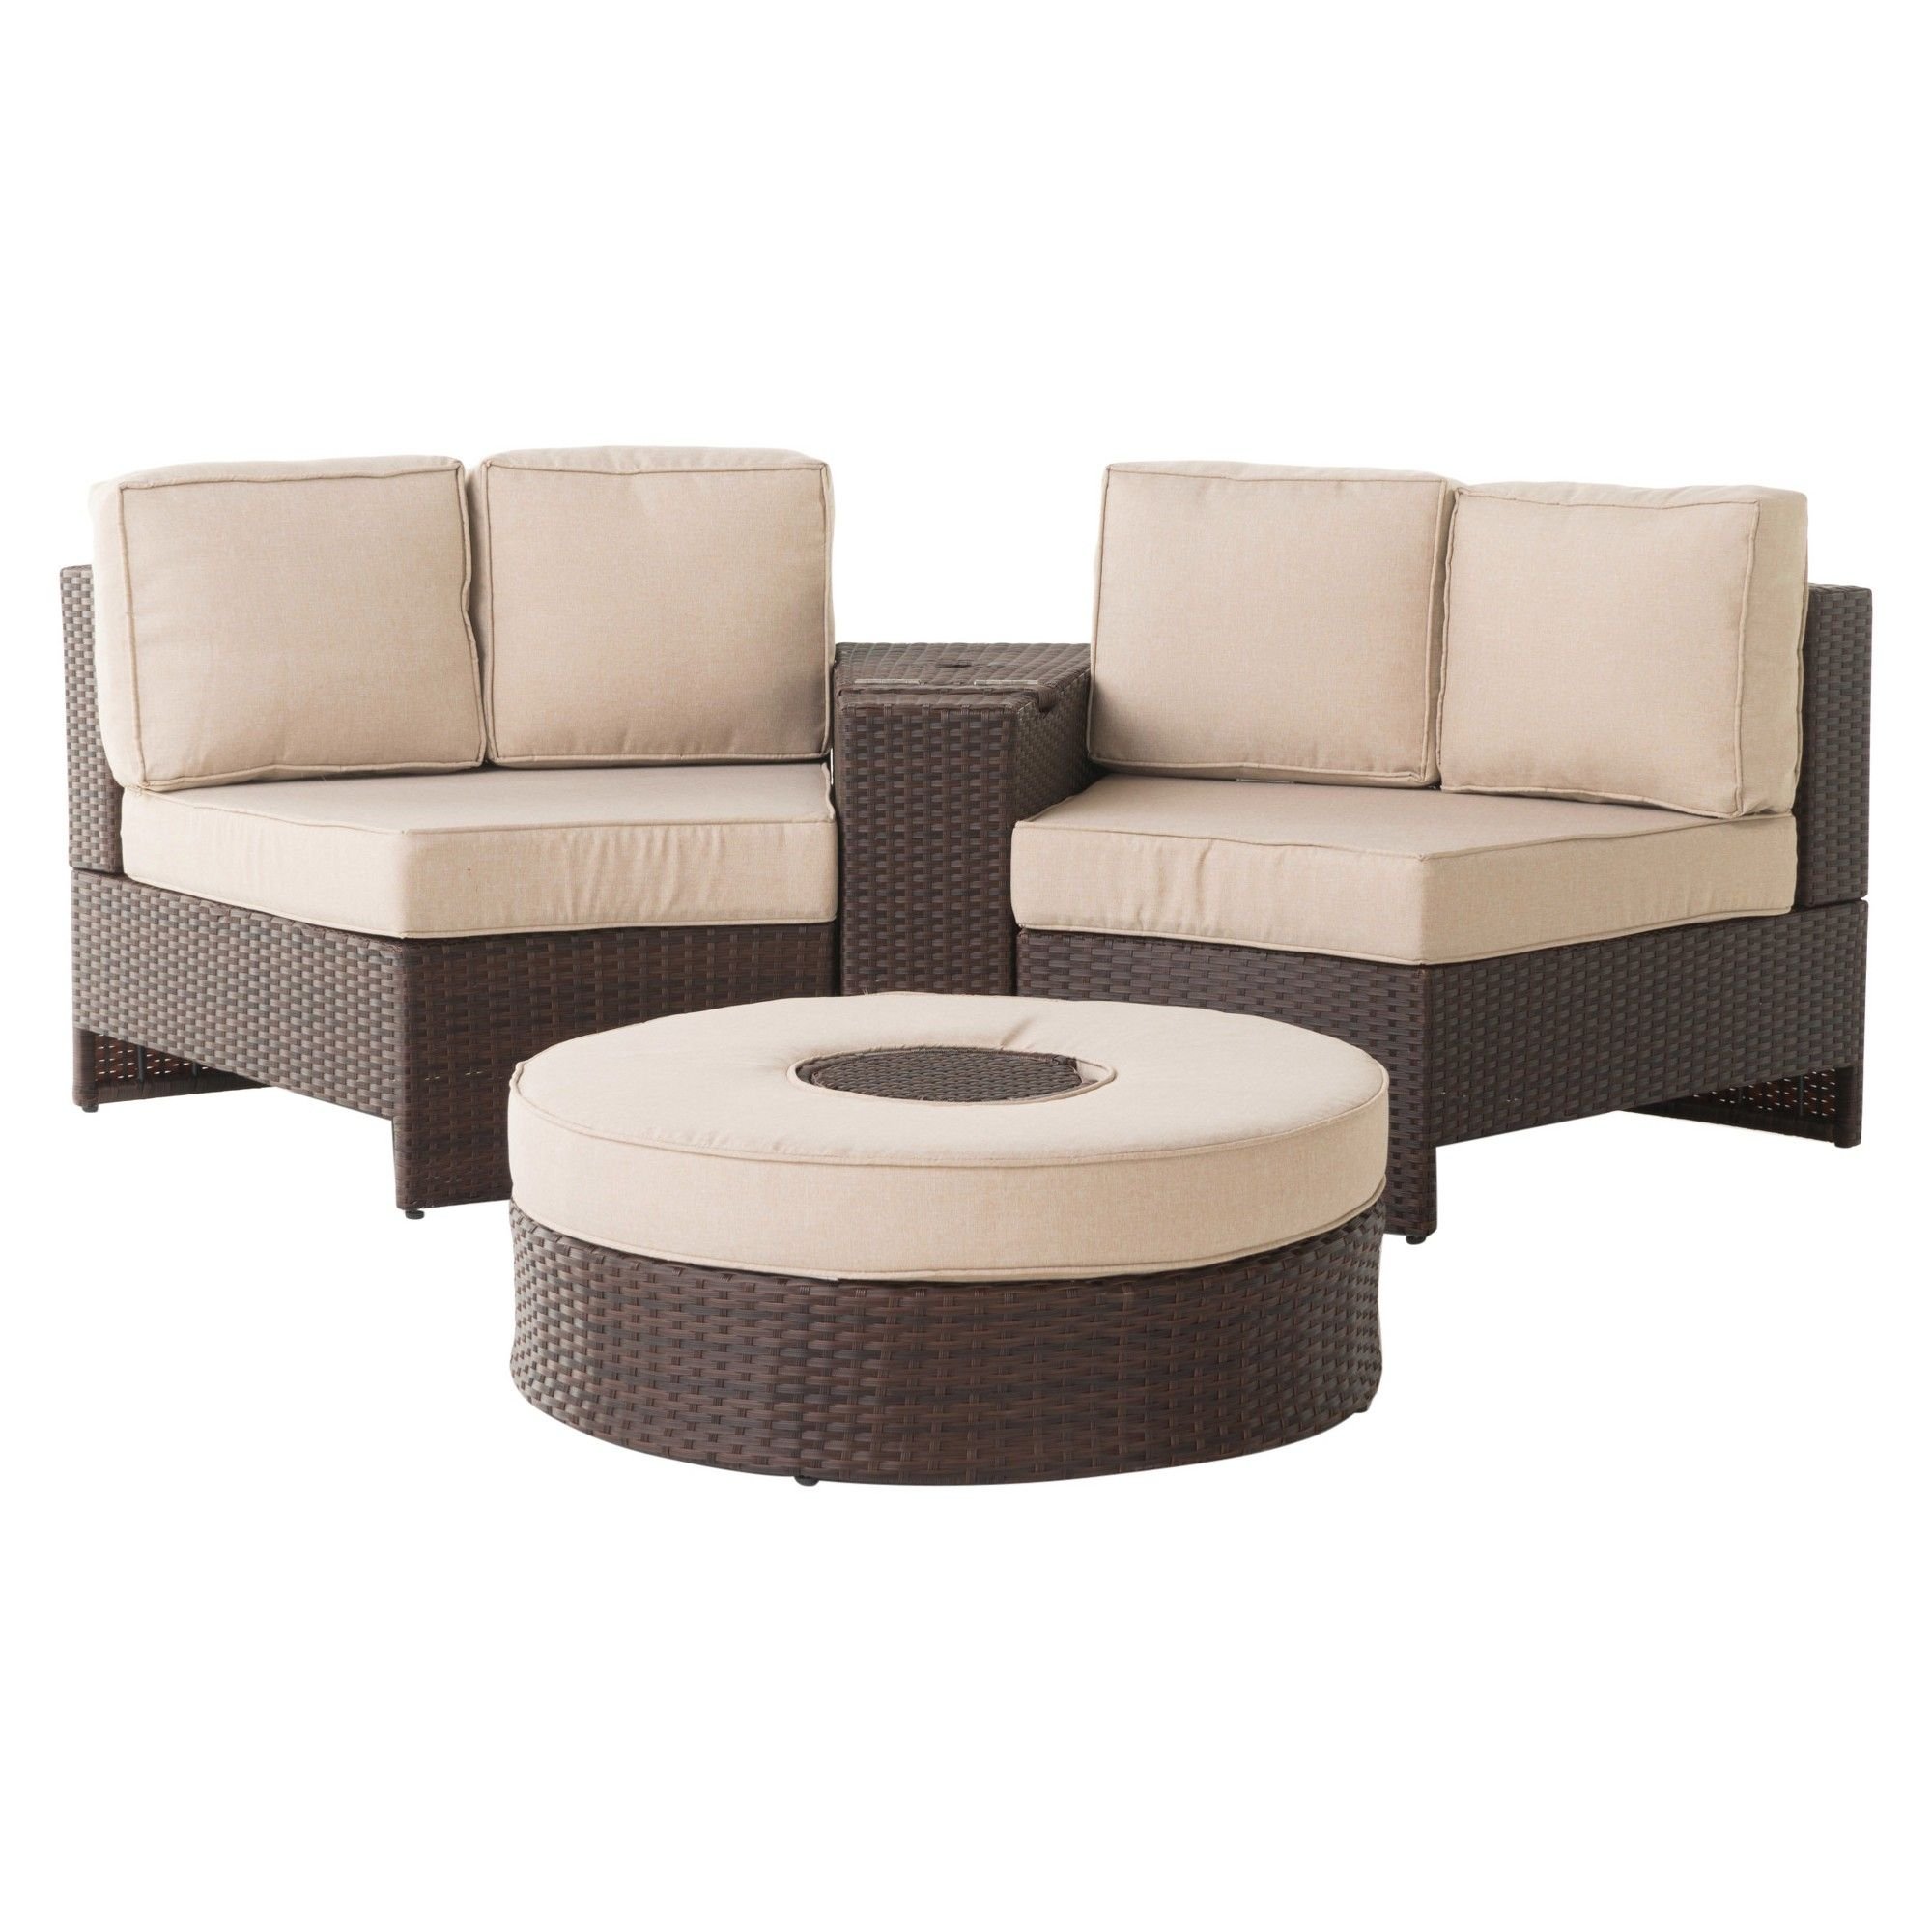 Brilliant Madras Ibiza 4Pc Wicker 1 2 Round Seating Set With Ice Home Interior And Landscaping Mentranervesignezvosmurscom